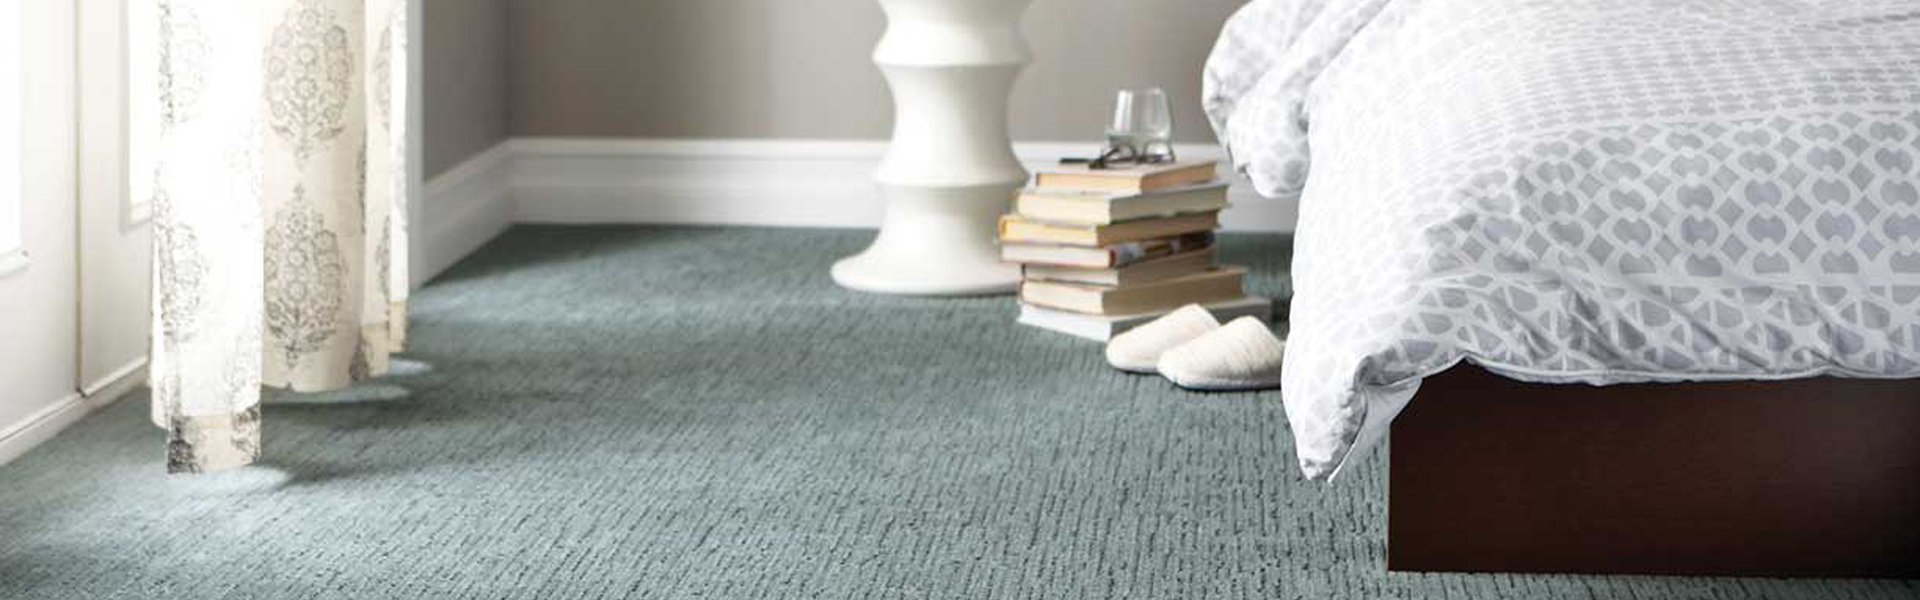 carpet-re-stretching-in-Greenville-SC